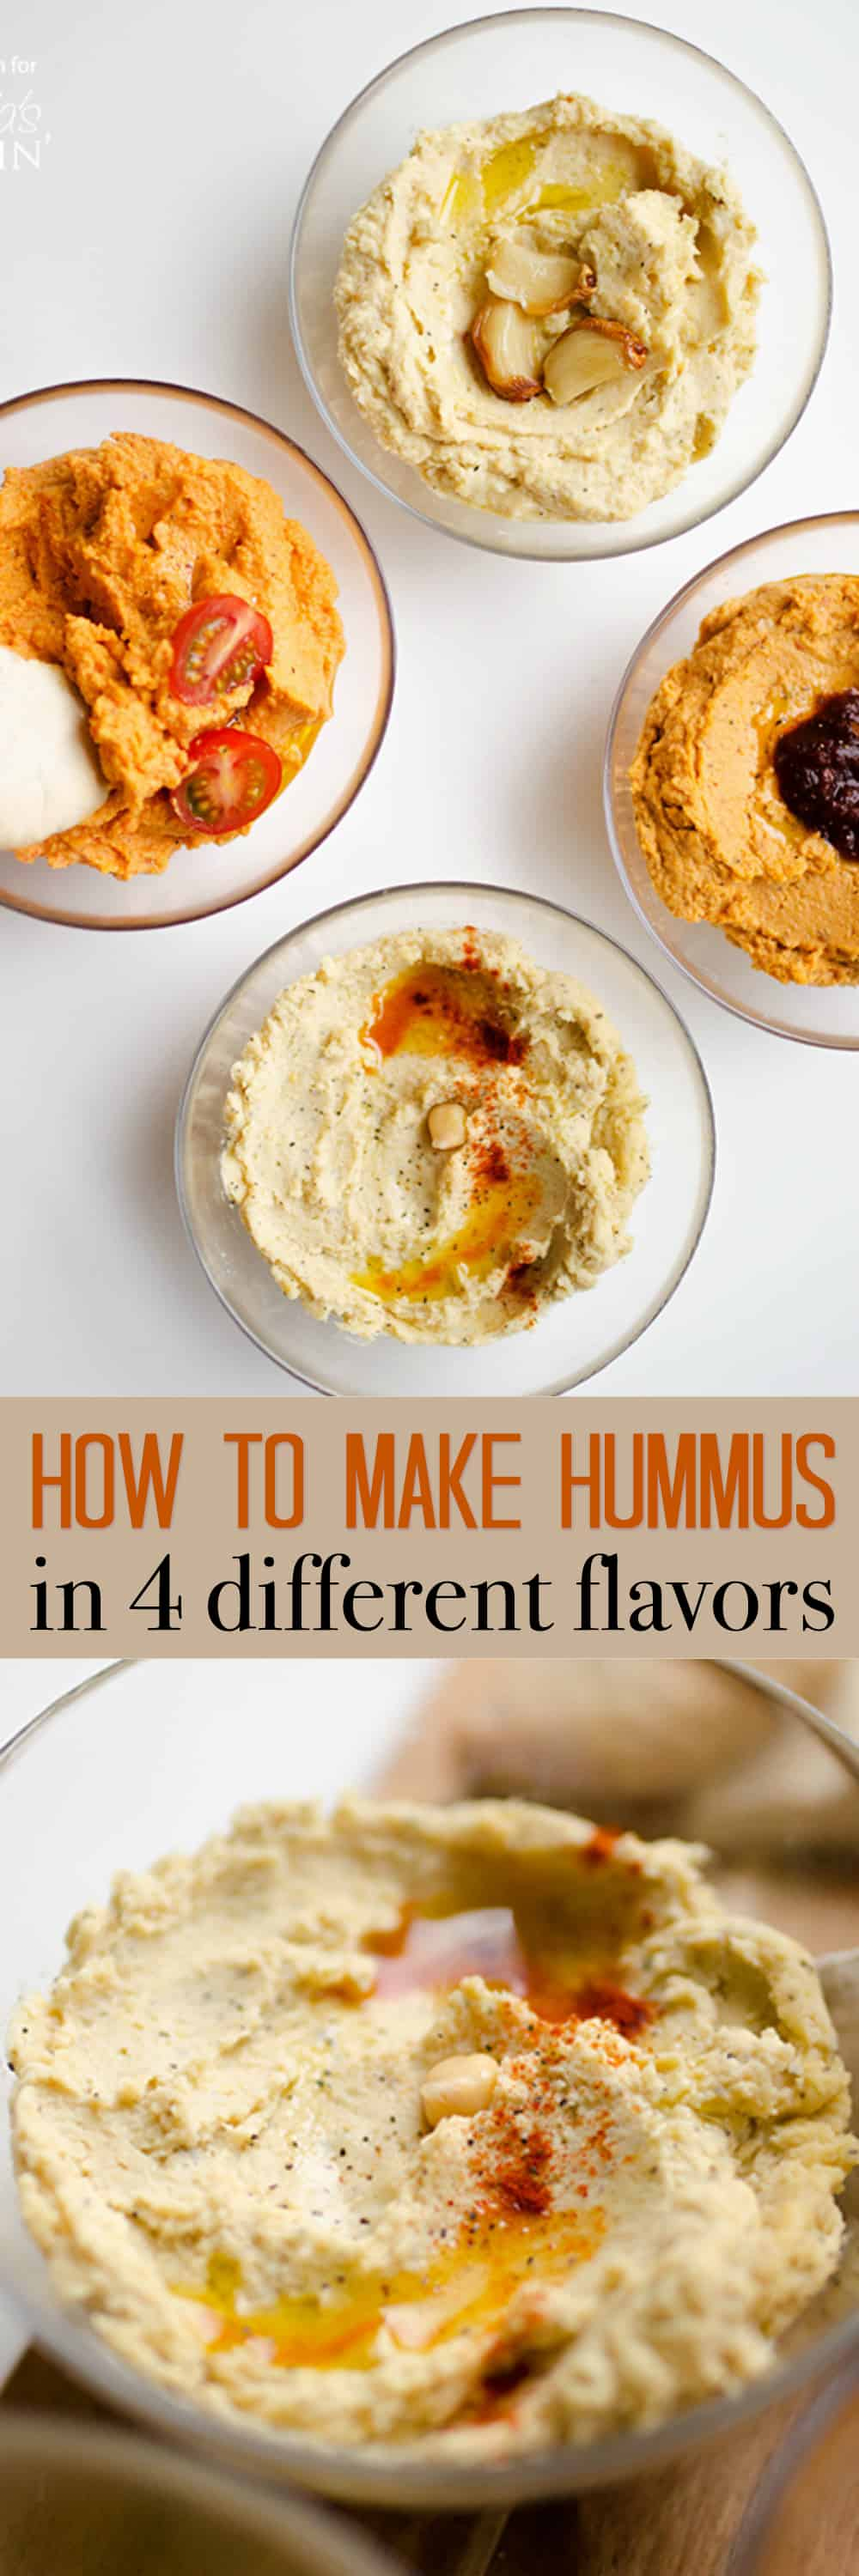 Today I'm showing you how to make hummus in 4 tasty flavors. Hummus is the perfect creamy, protein-packed spread to use as a snack dip or to spread onto sandwiches and wraps. But did you know it's ultra-simple to make at home, and just takes 5 minutes?